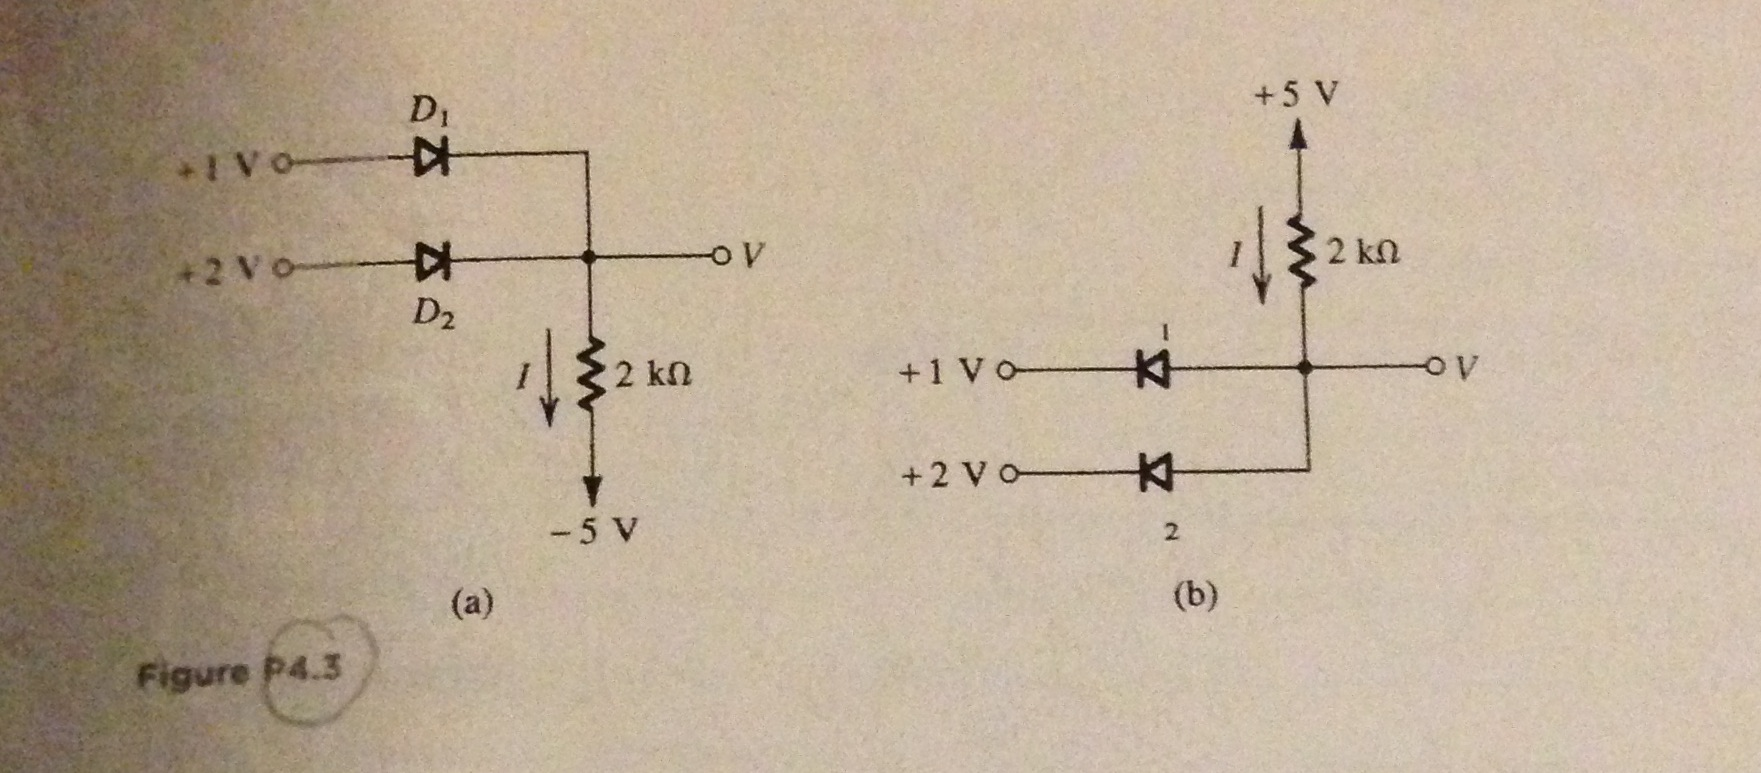 For the circuits shown in Figure4.3 using ideal di